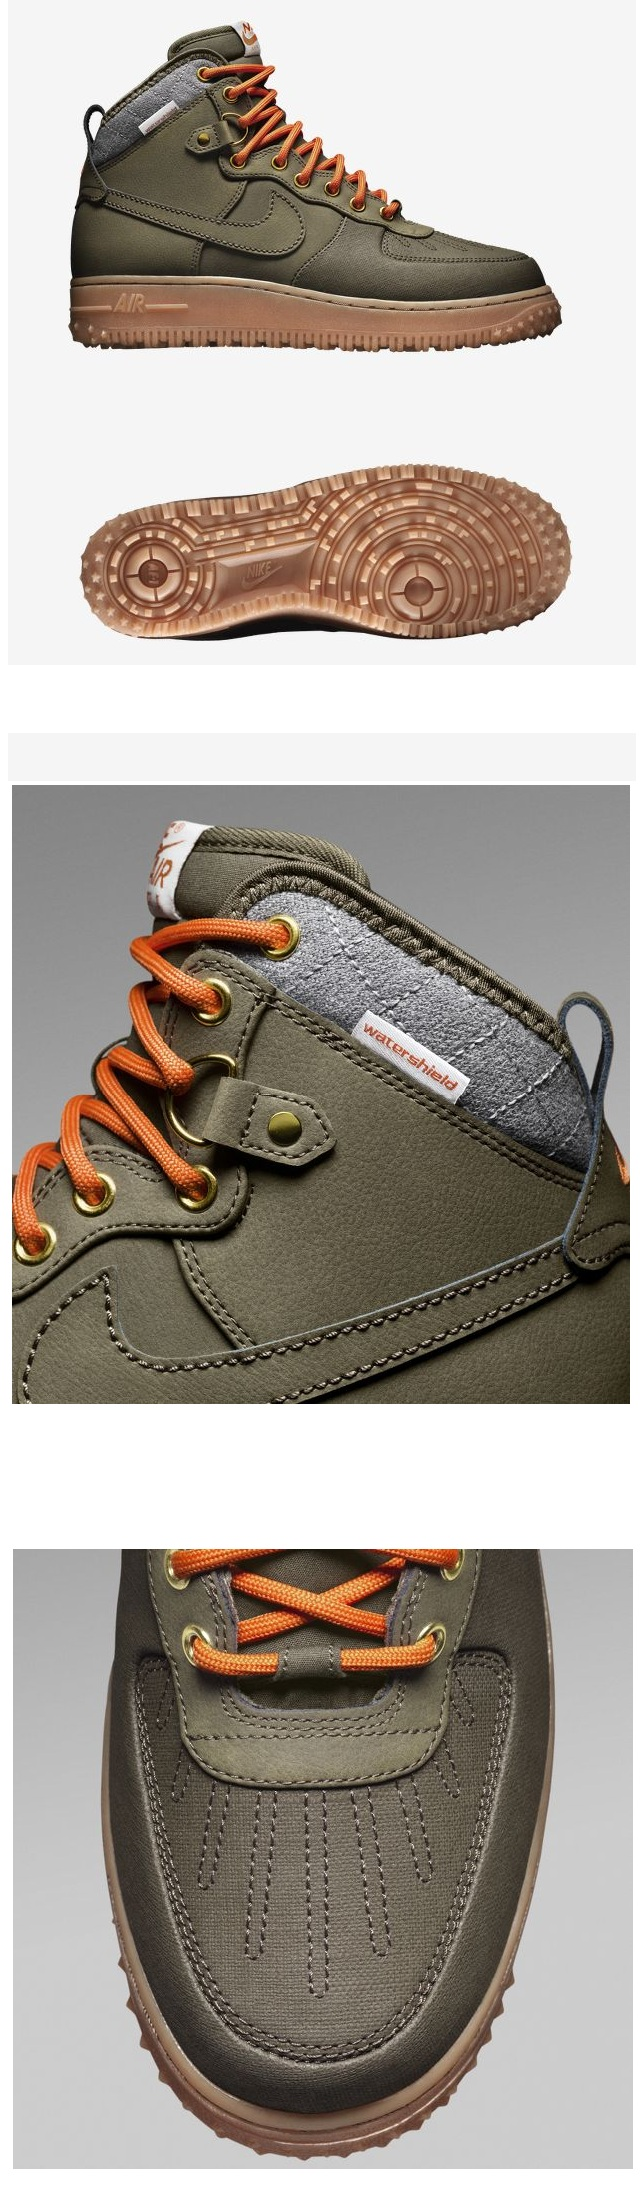 nike air force one duckboot 4h10.com